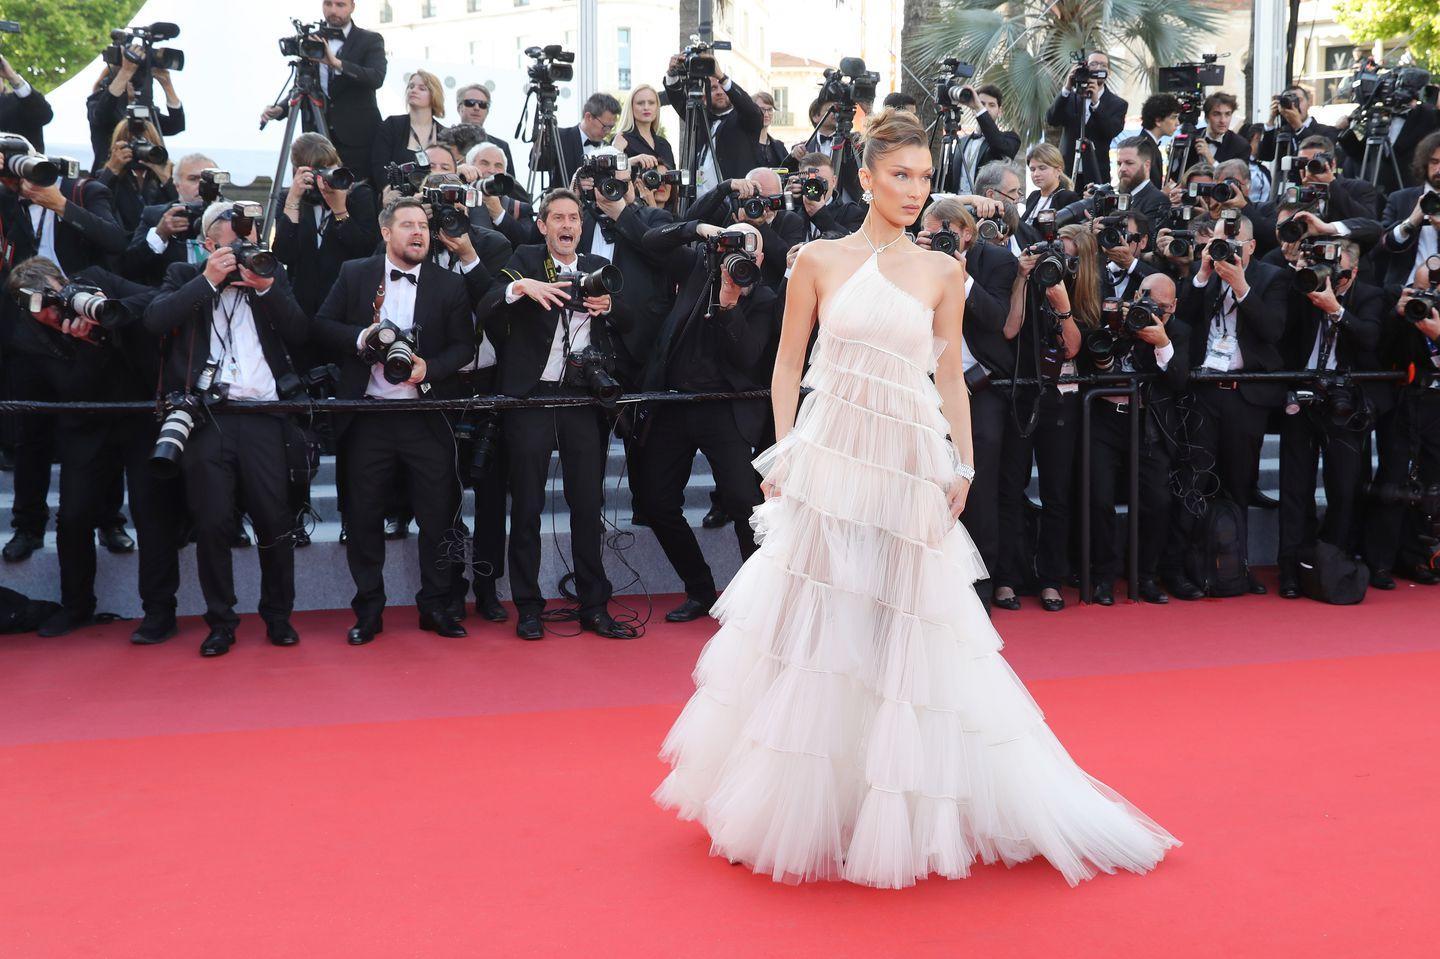 cannes film festival lineup includes a zombie flick on - HD 1440×959